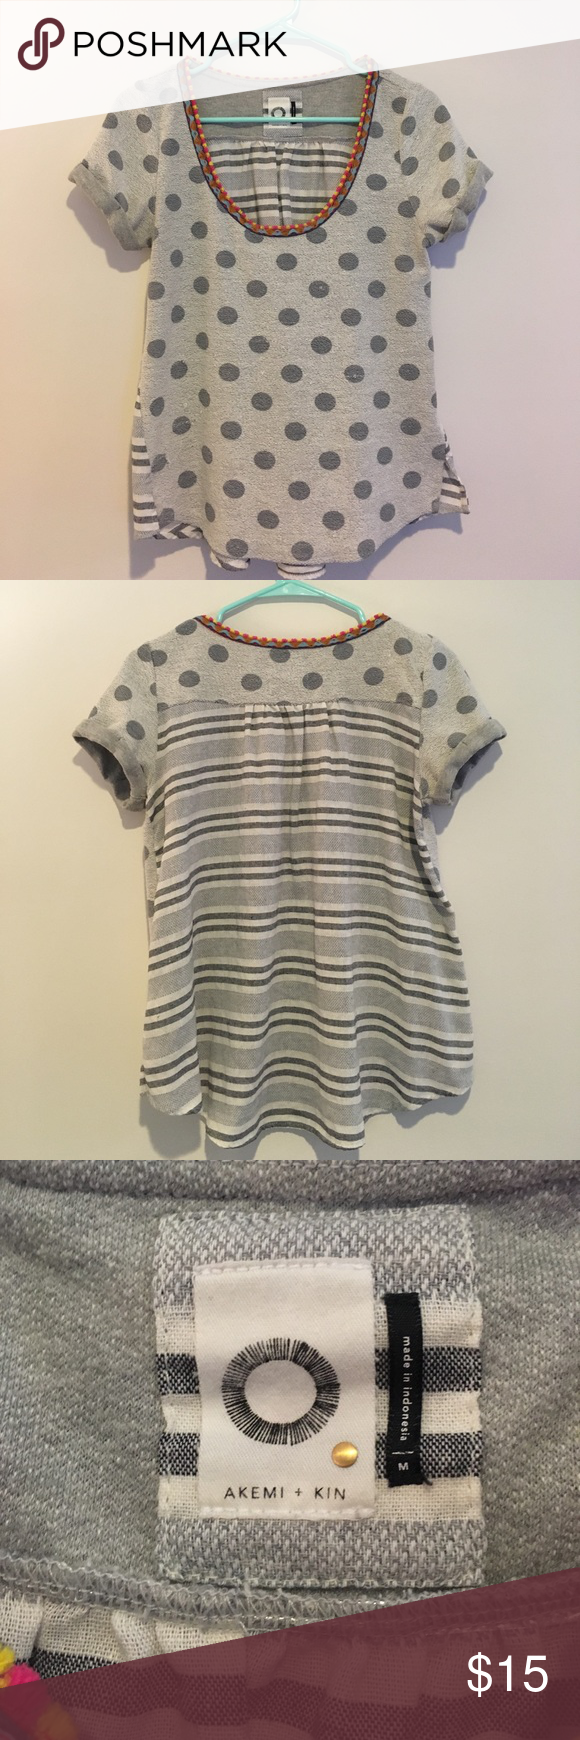 Polka Dot and Striped Akemi + Kin Top A mix of textures, colors, and patterns in this adorable Akemi + Kin top! Worn several times, a couple pulls on the front but an easy fix. Akemi + Kin Tops